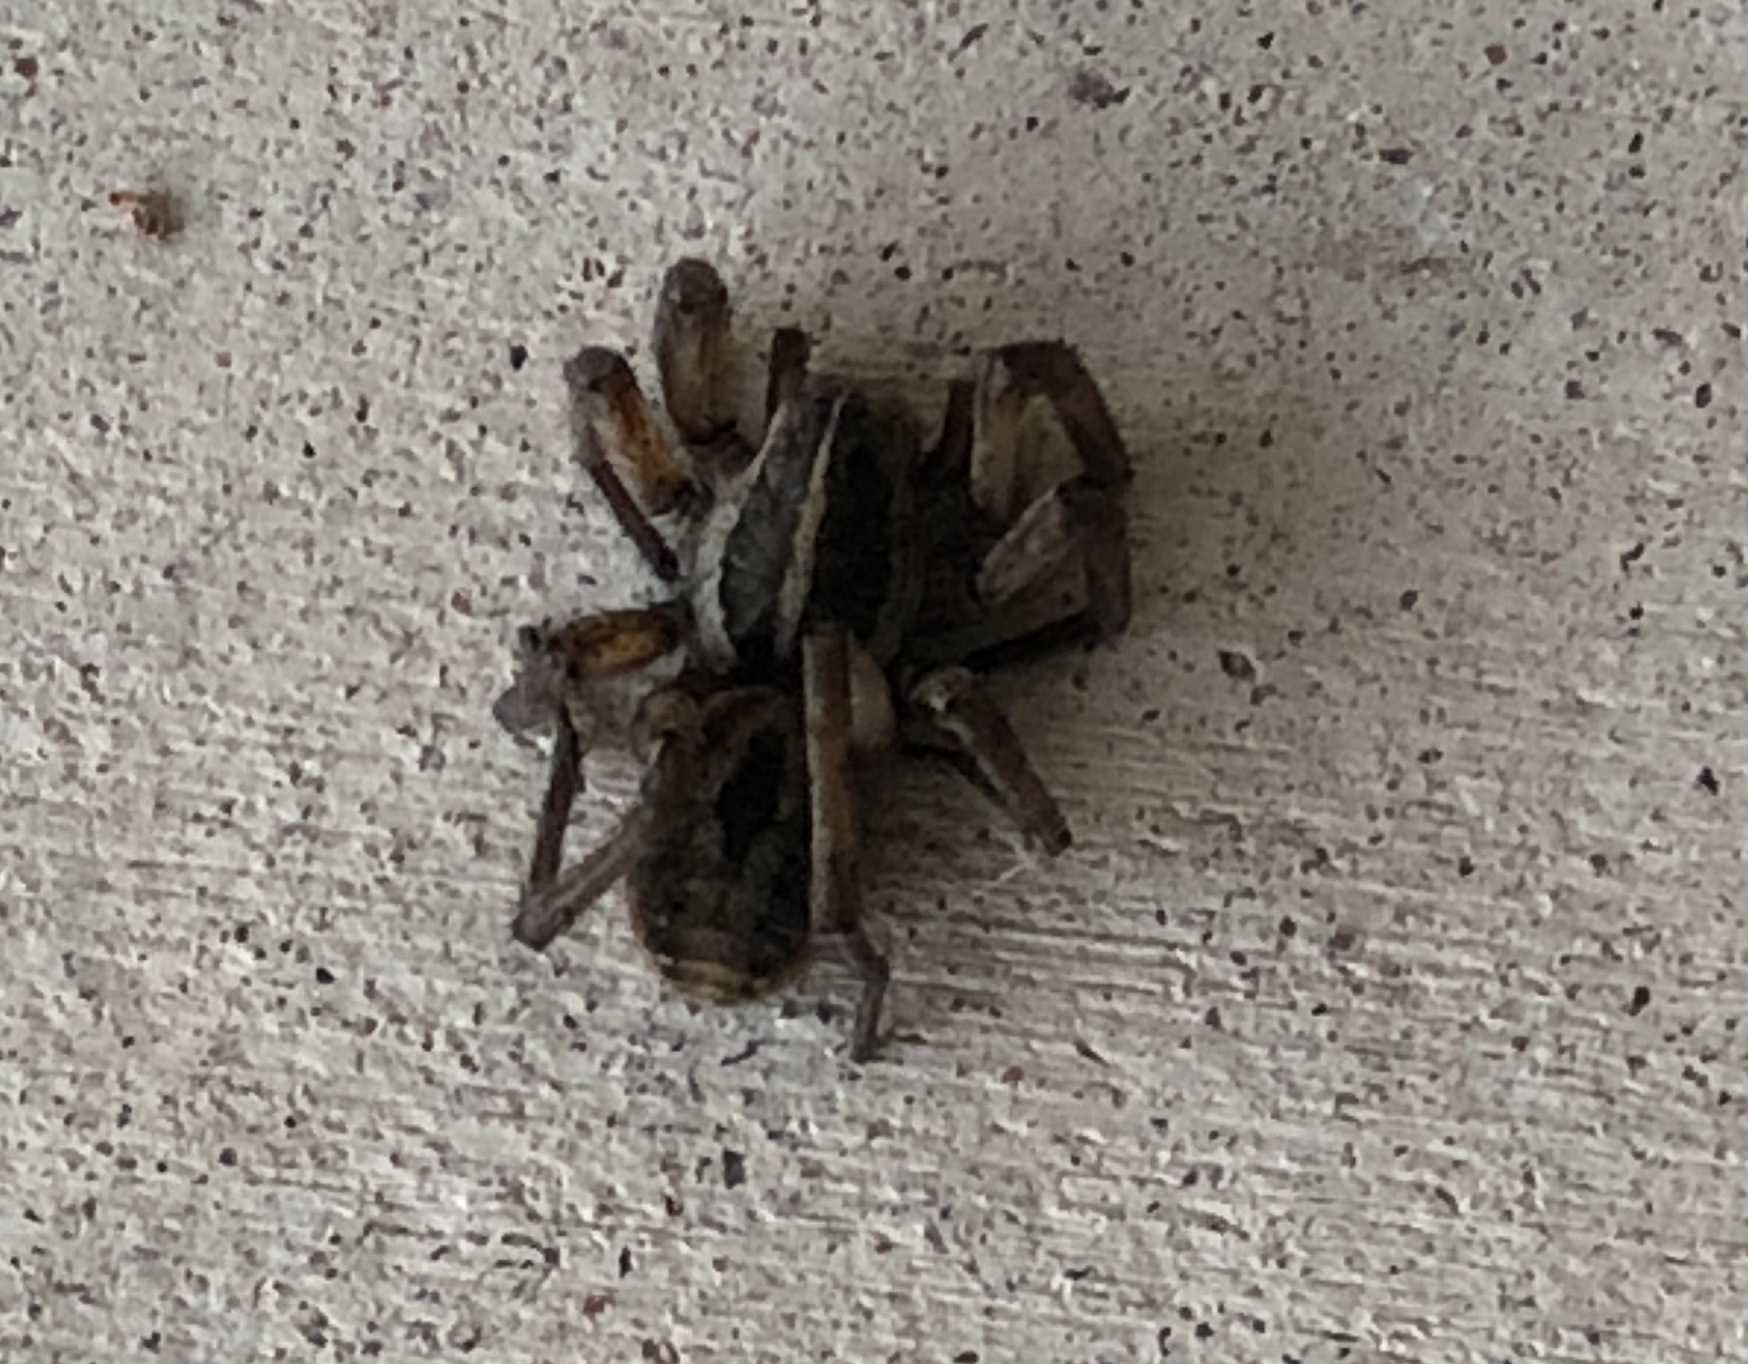 00s Spider on front porch